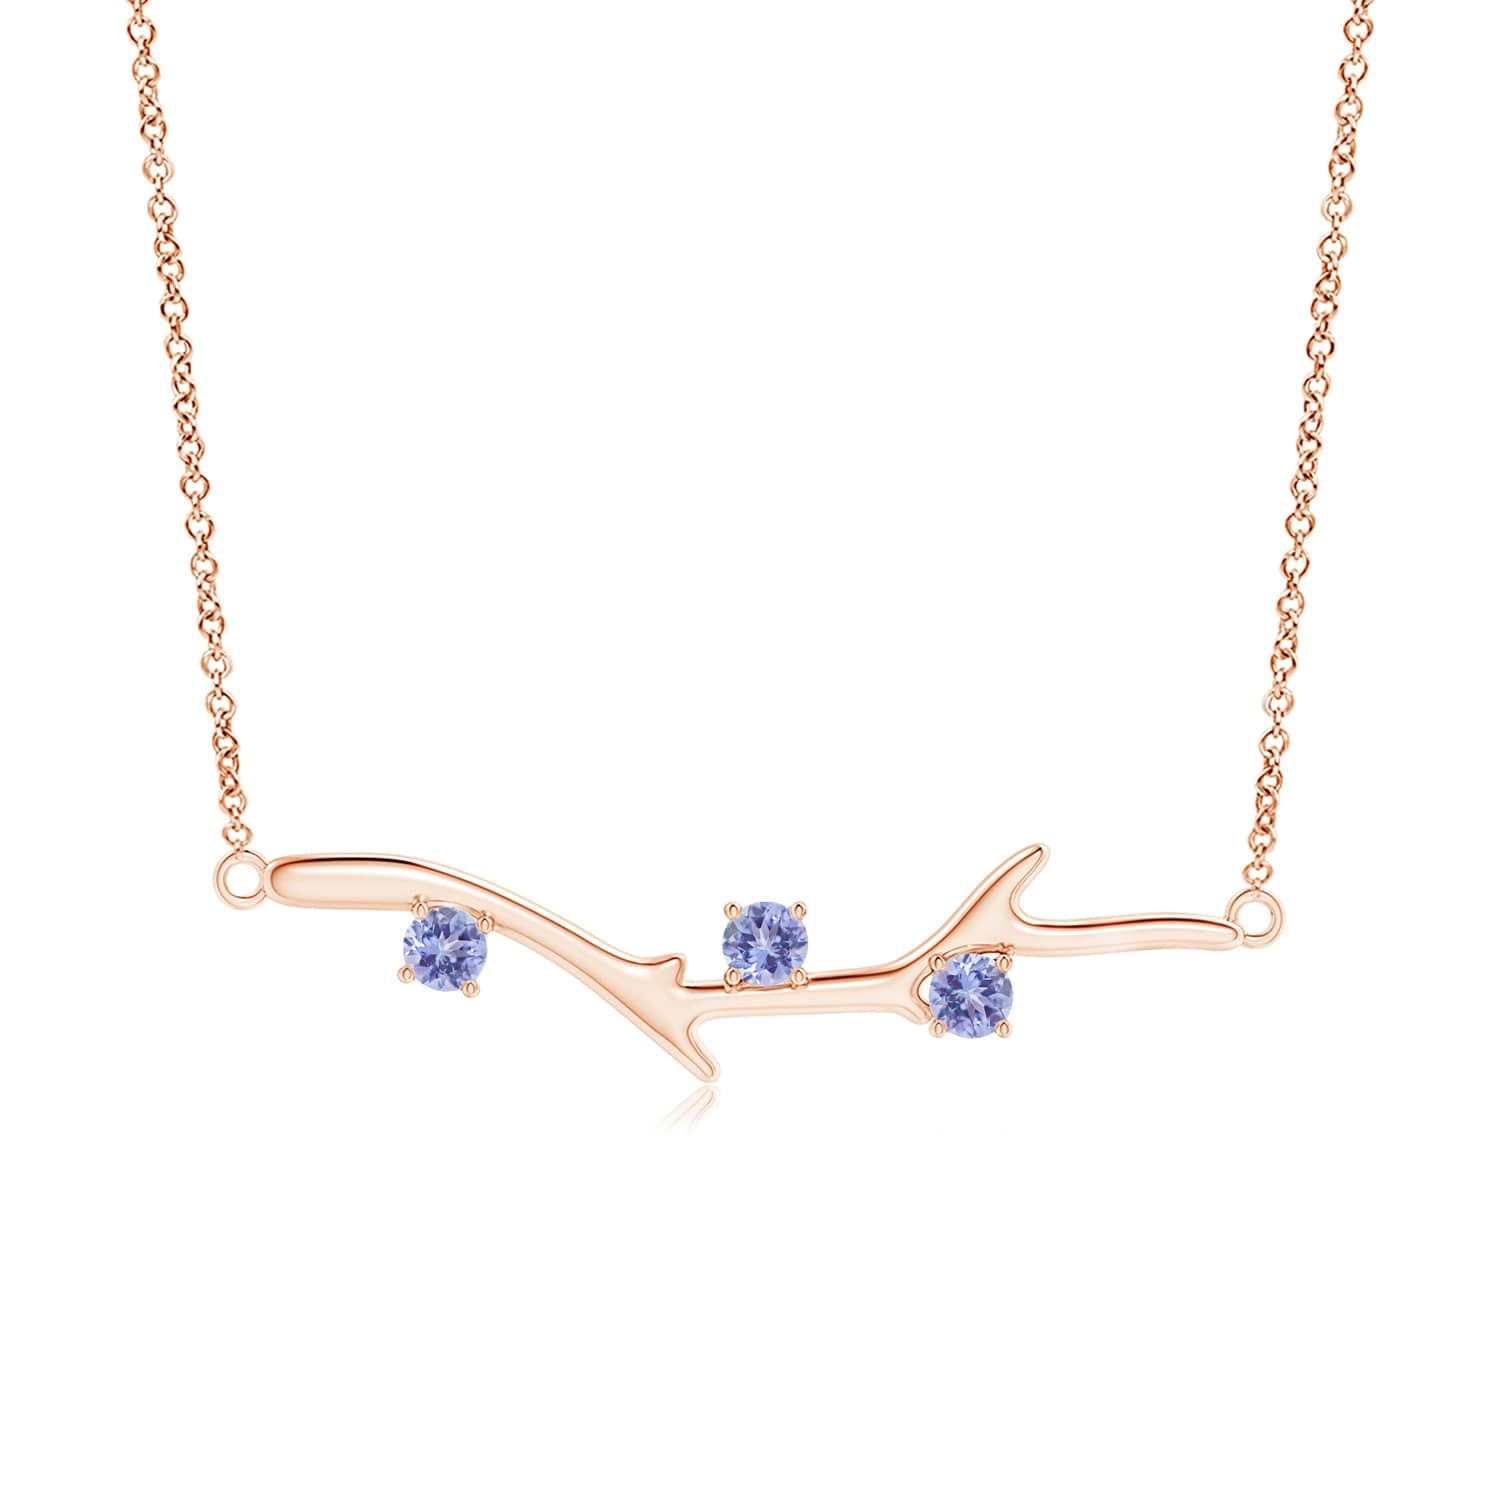 """0.3 carat Round Brilliant Prongs Set Tanzanite Pendant Necklace in 14K Rose Gold, 18"""" Inches, December Birthstone... by Angara.com"""